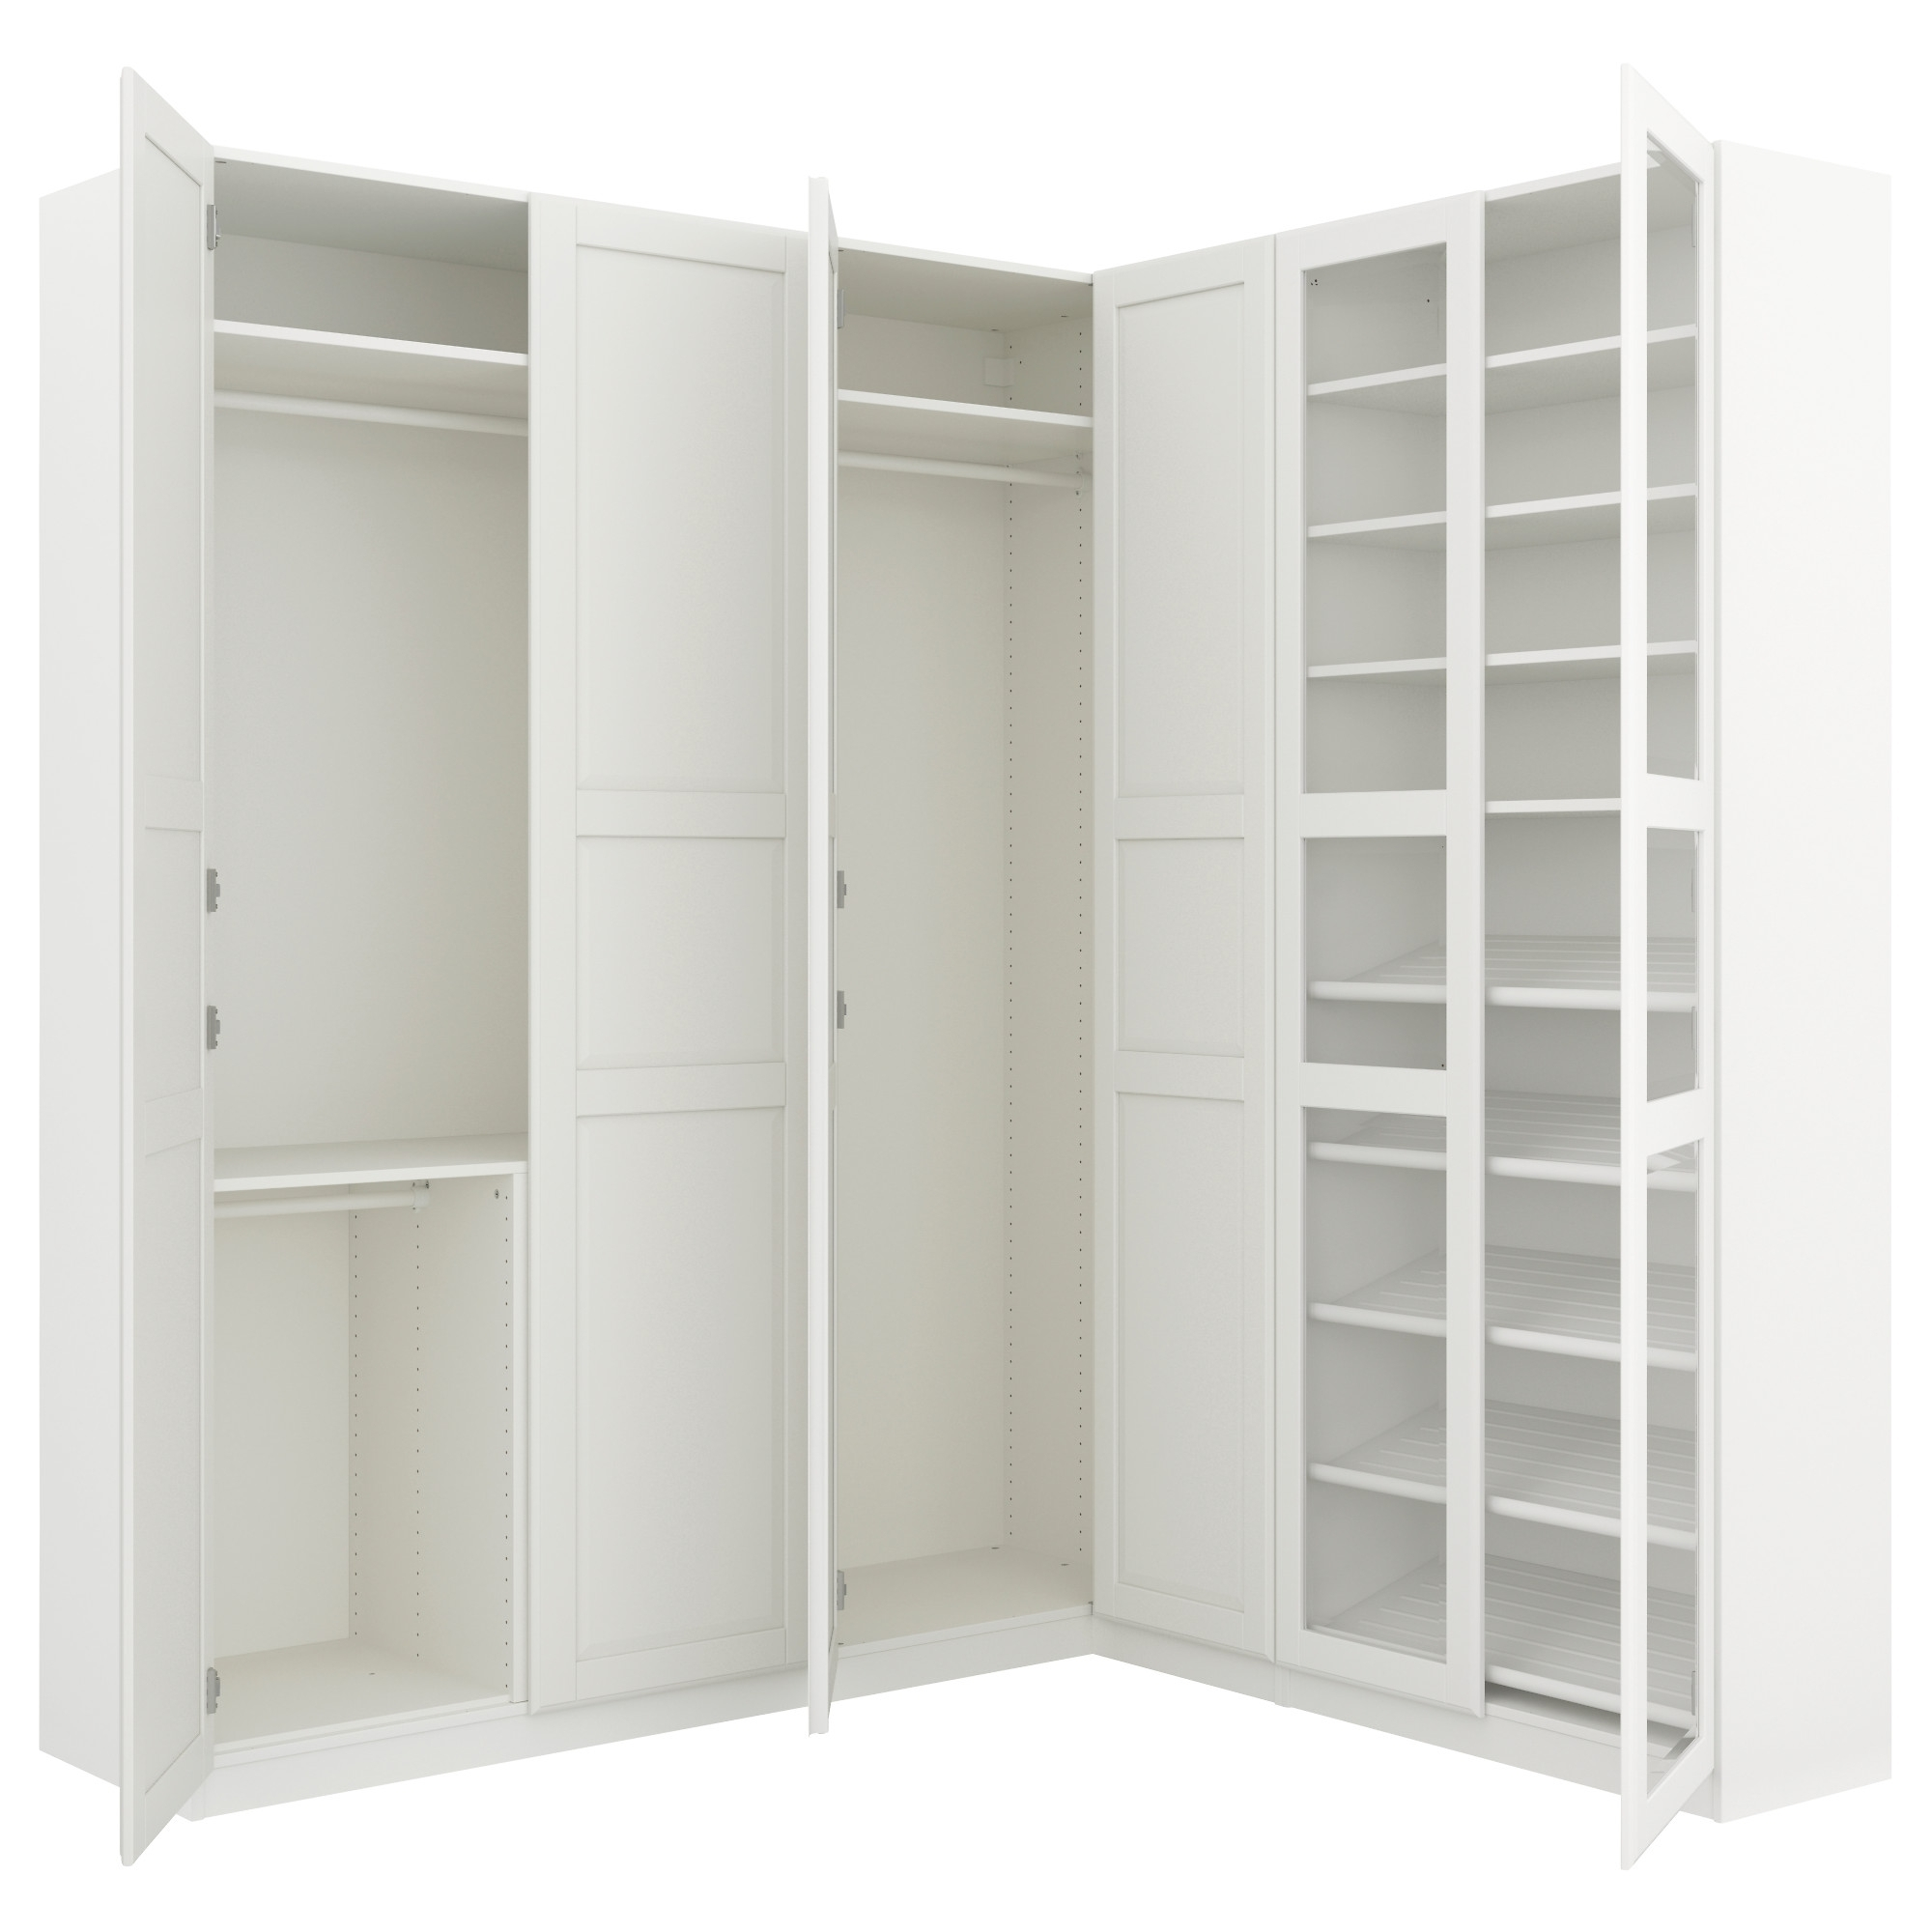 Brilliant White Corner Wardrobes – Buildsimplehome Pertaining To Most Popular White Corner Wardrobes Units (View 3 of 15)